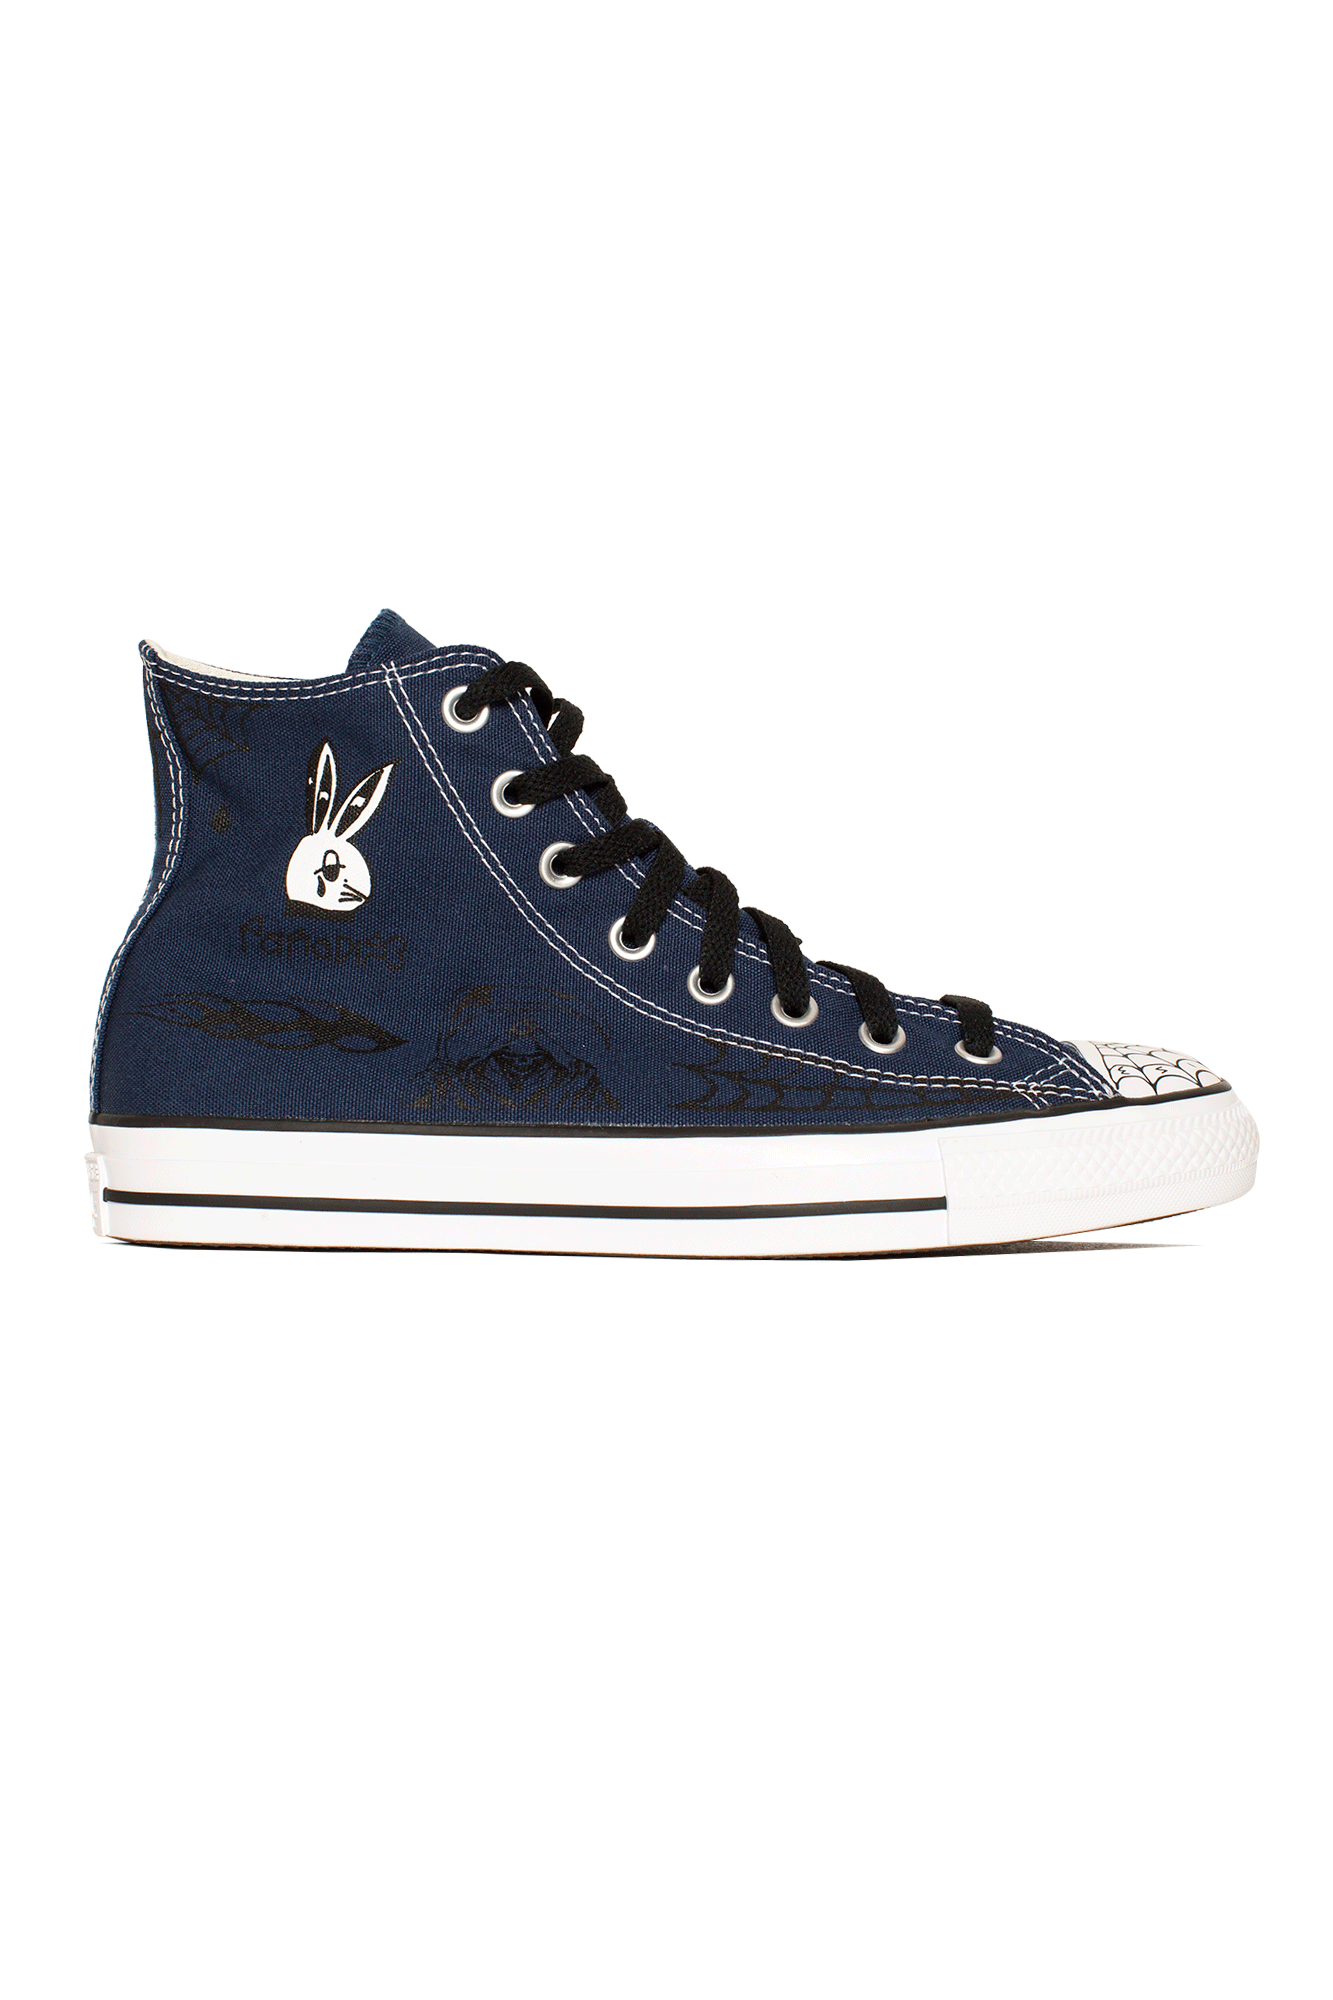 Converse Sneakers Chuck Taylor All Star Pro SP Hi Blue 167953C#000#410#7 - One Block Down